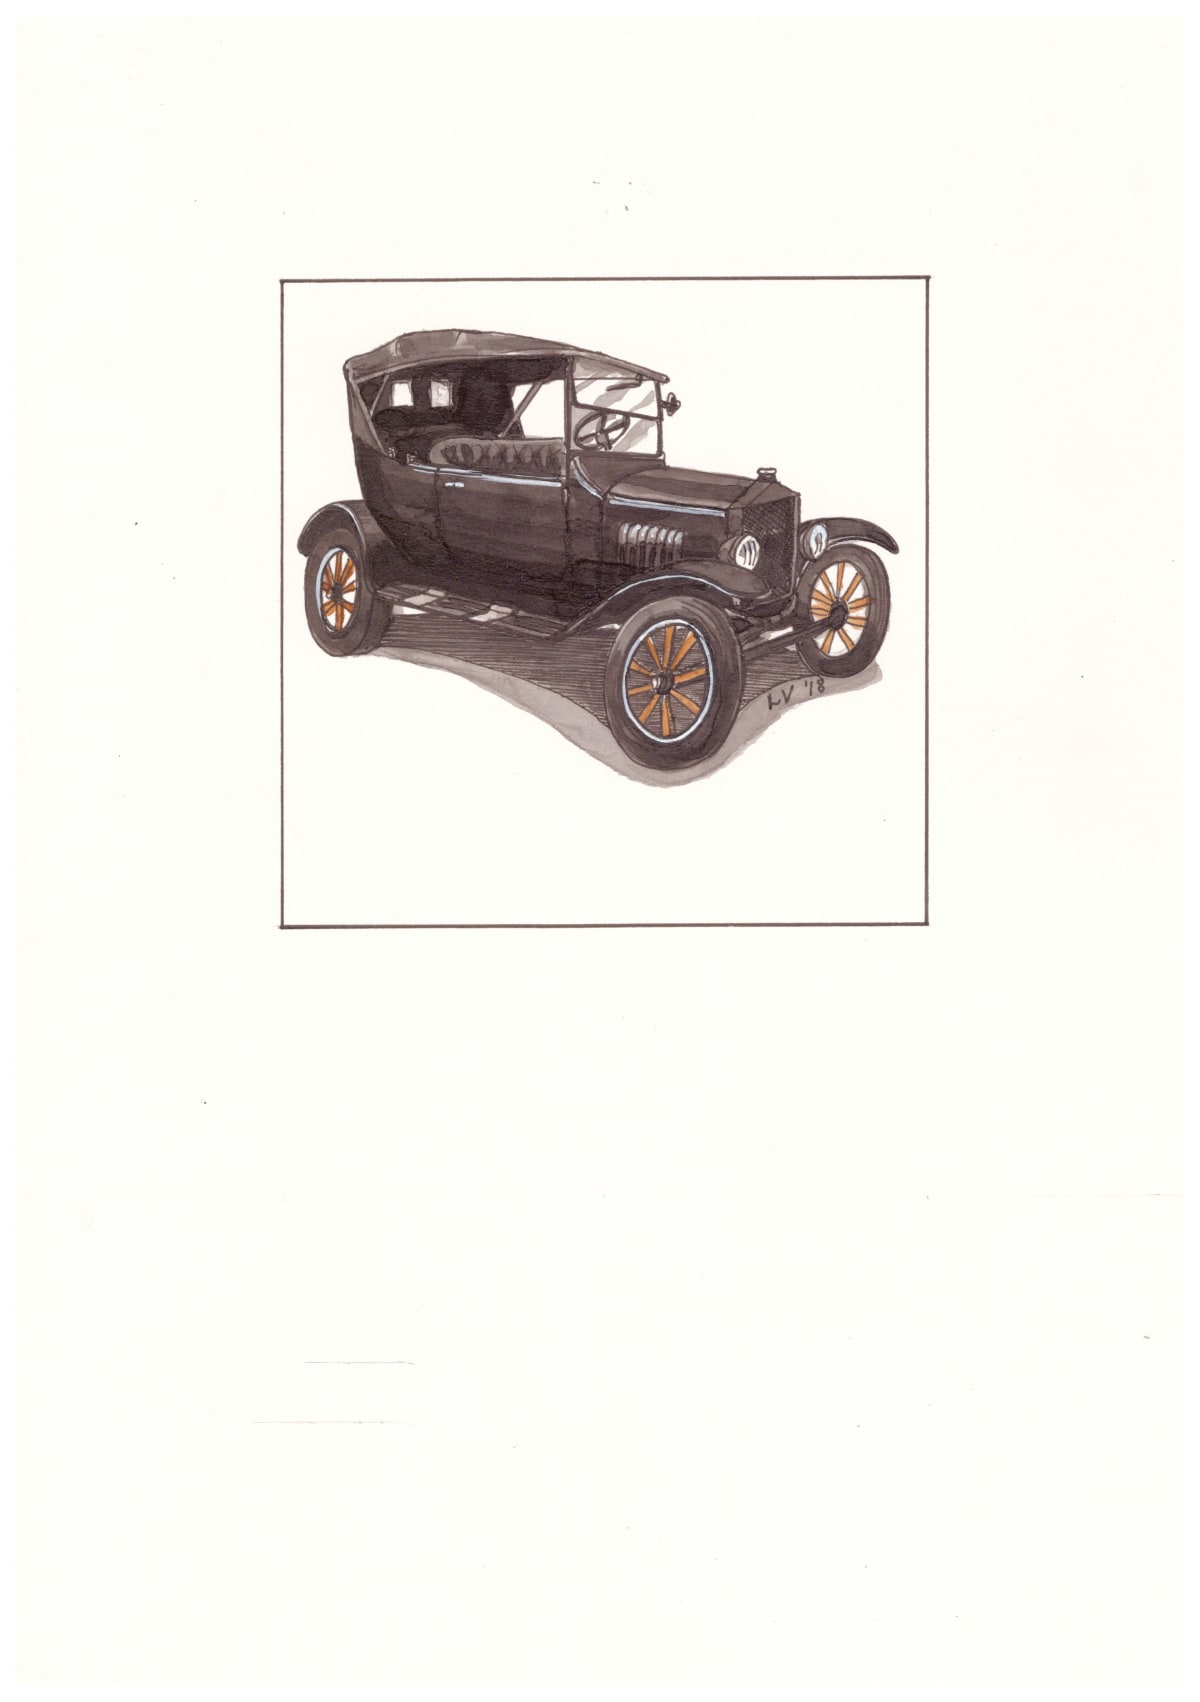 Leonora Venter, Ford Model T 1923, 2018